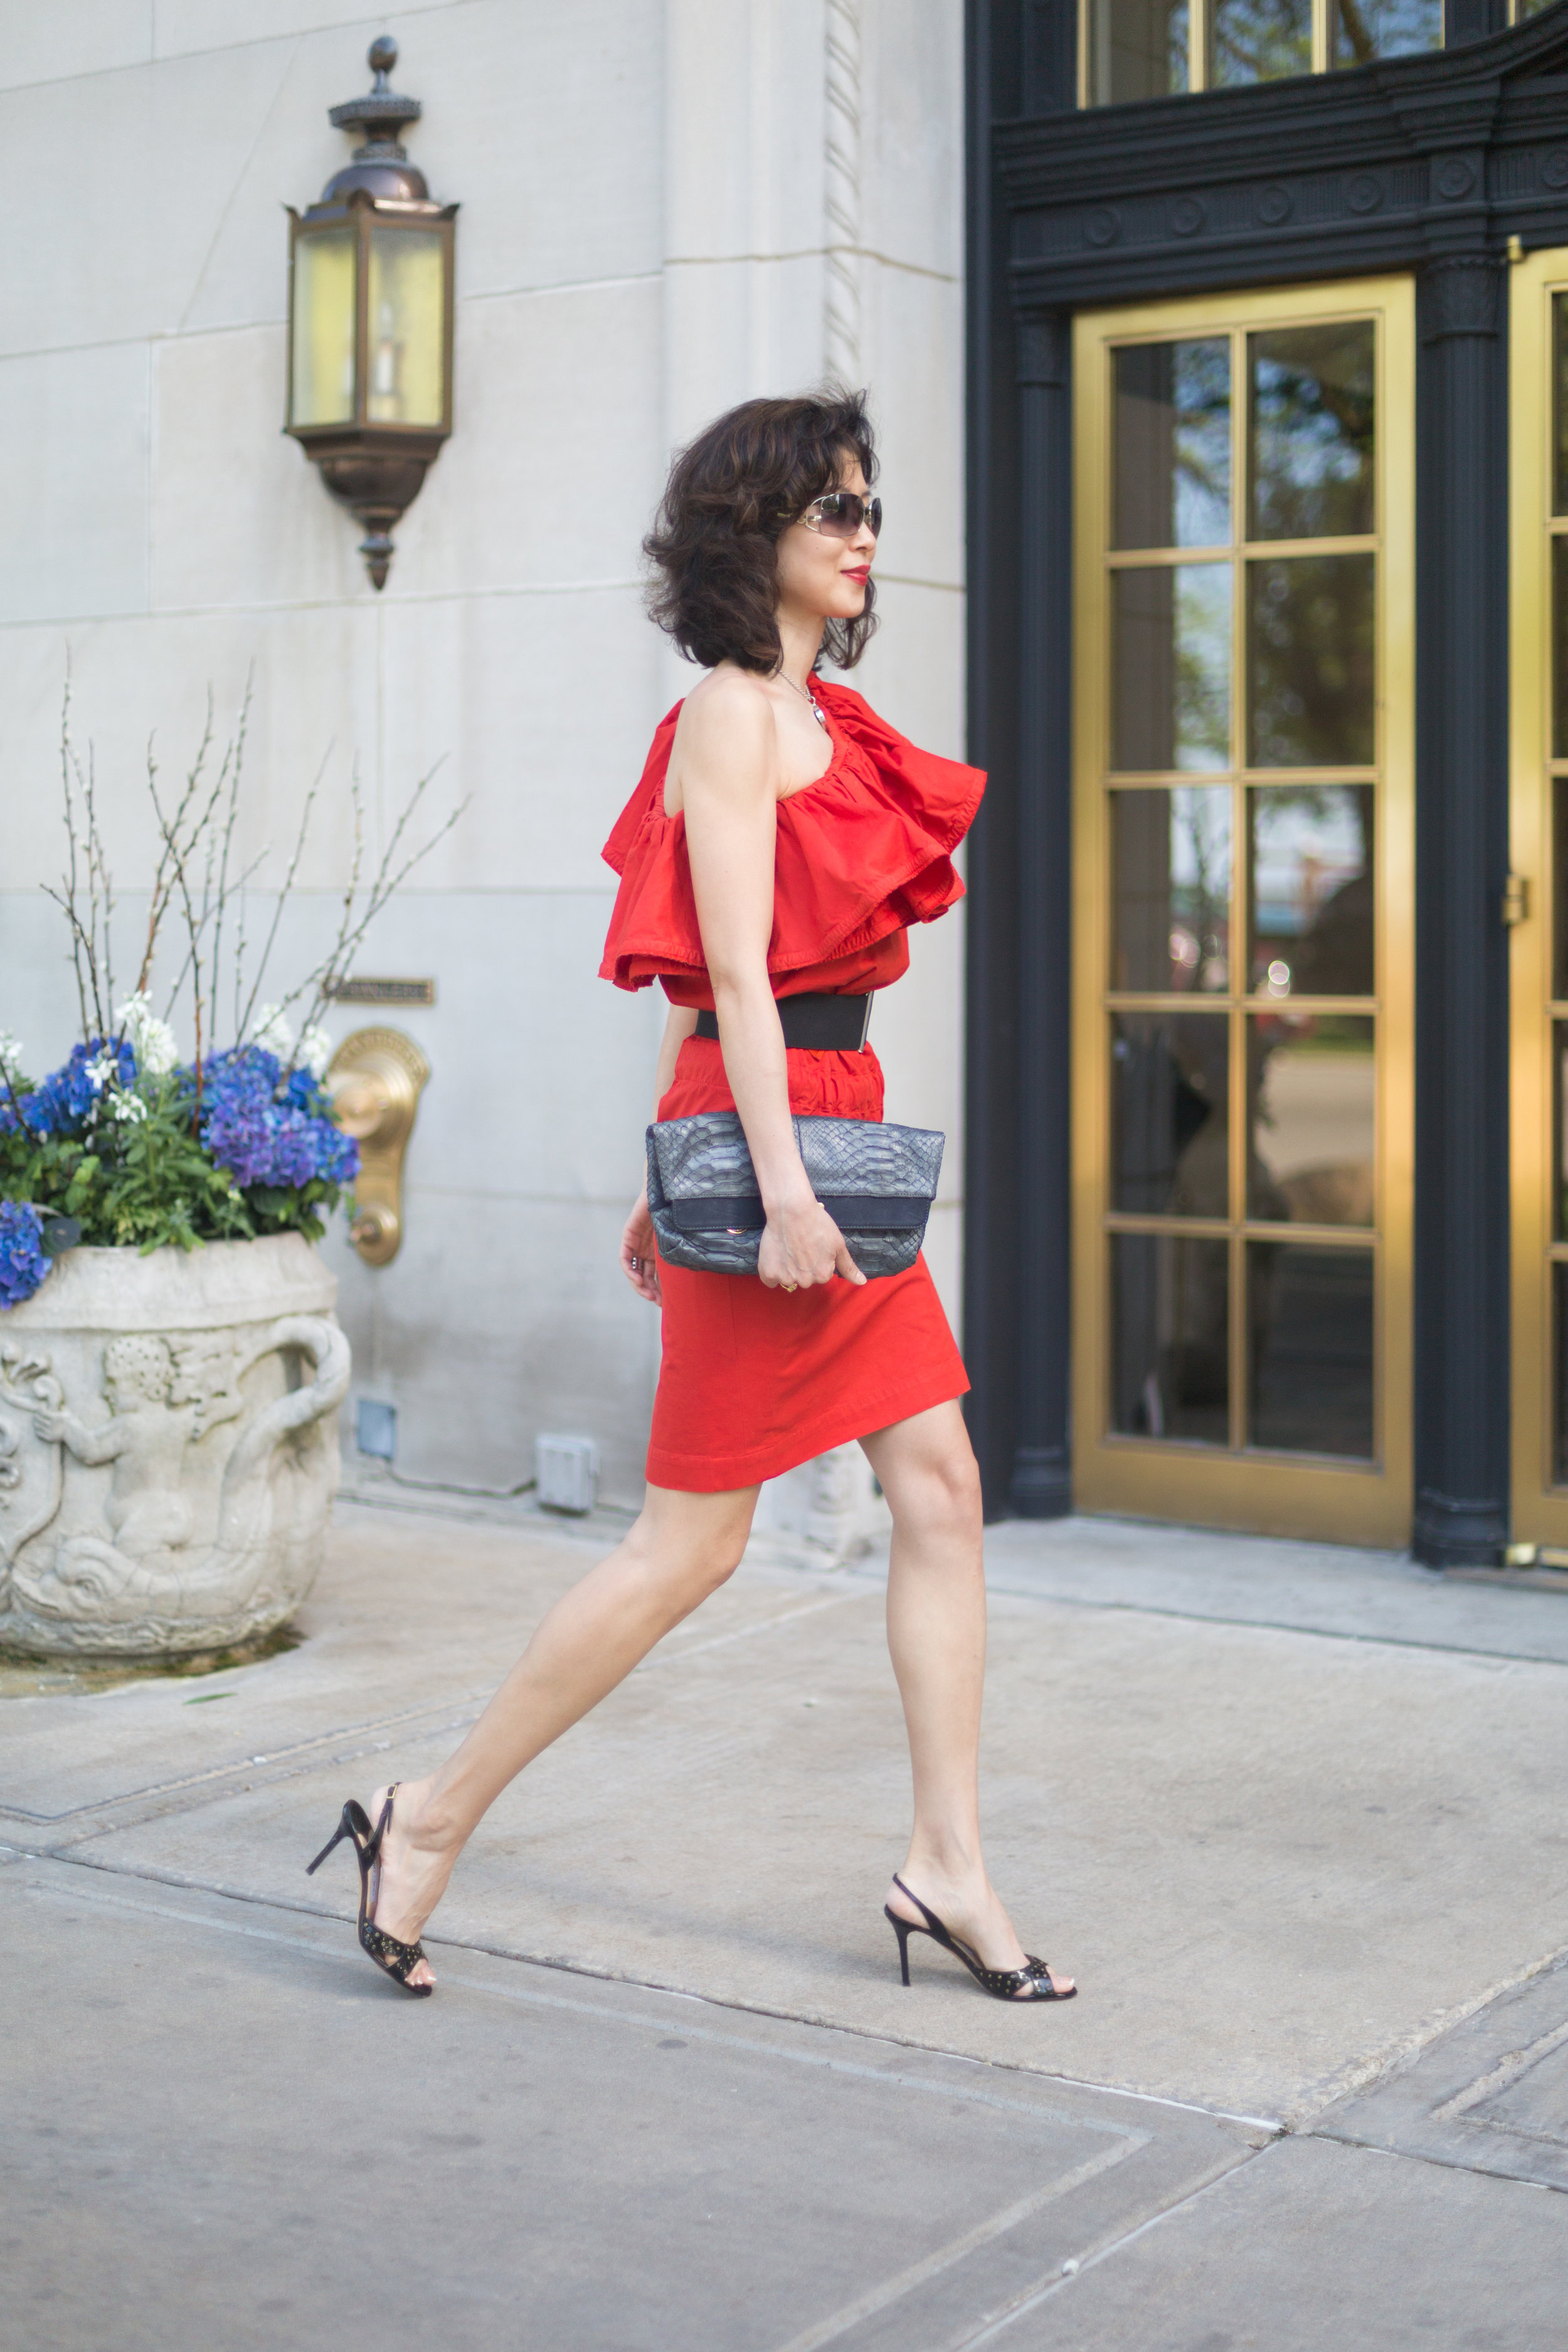 Shop my look and similar items here//  Dress:  Lanvin (similar  option  here)  Clutch: Lanvin sold out (similar  option  here)  Sandles: Jimmy Choo sold out (Similar  splurge option  here and  steal option  here)